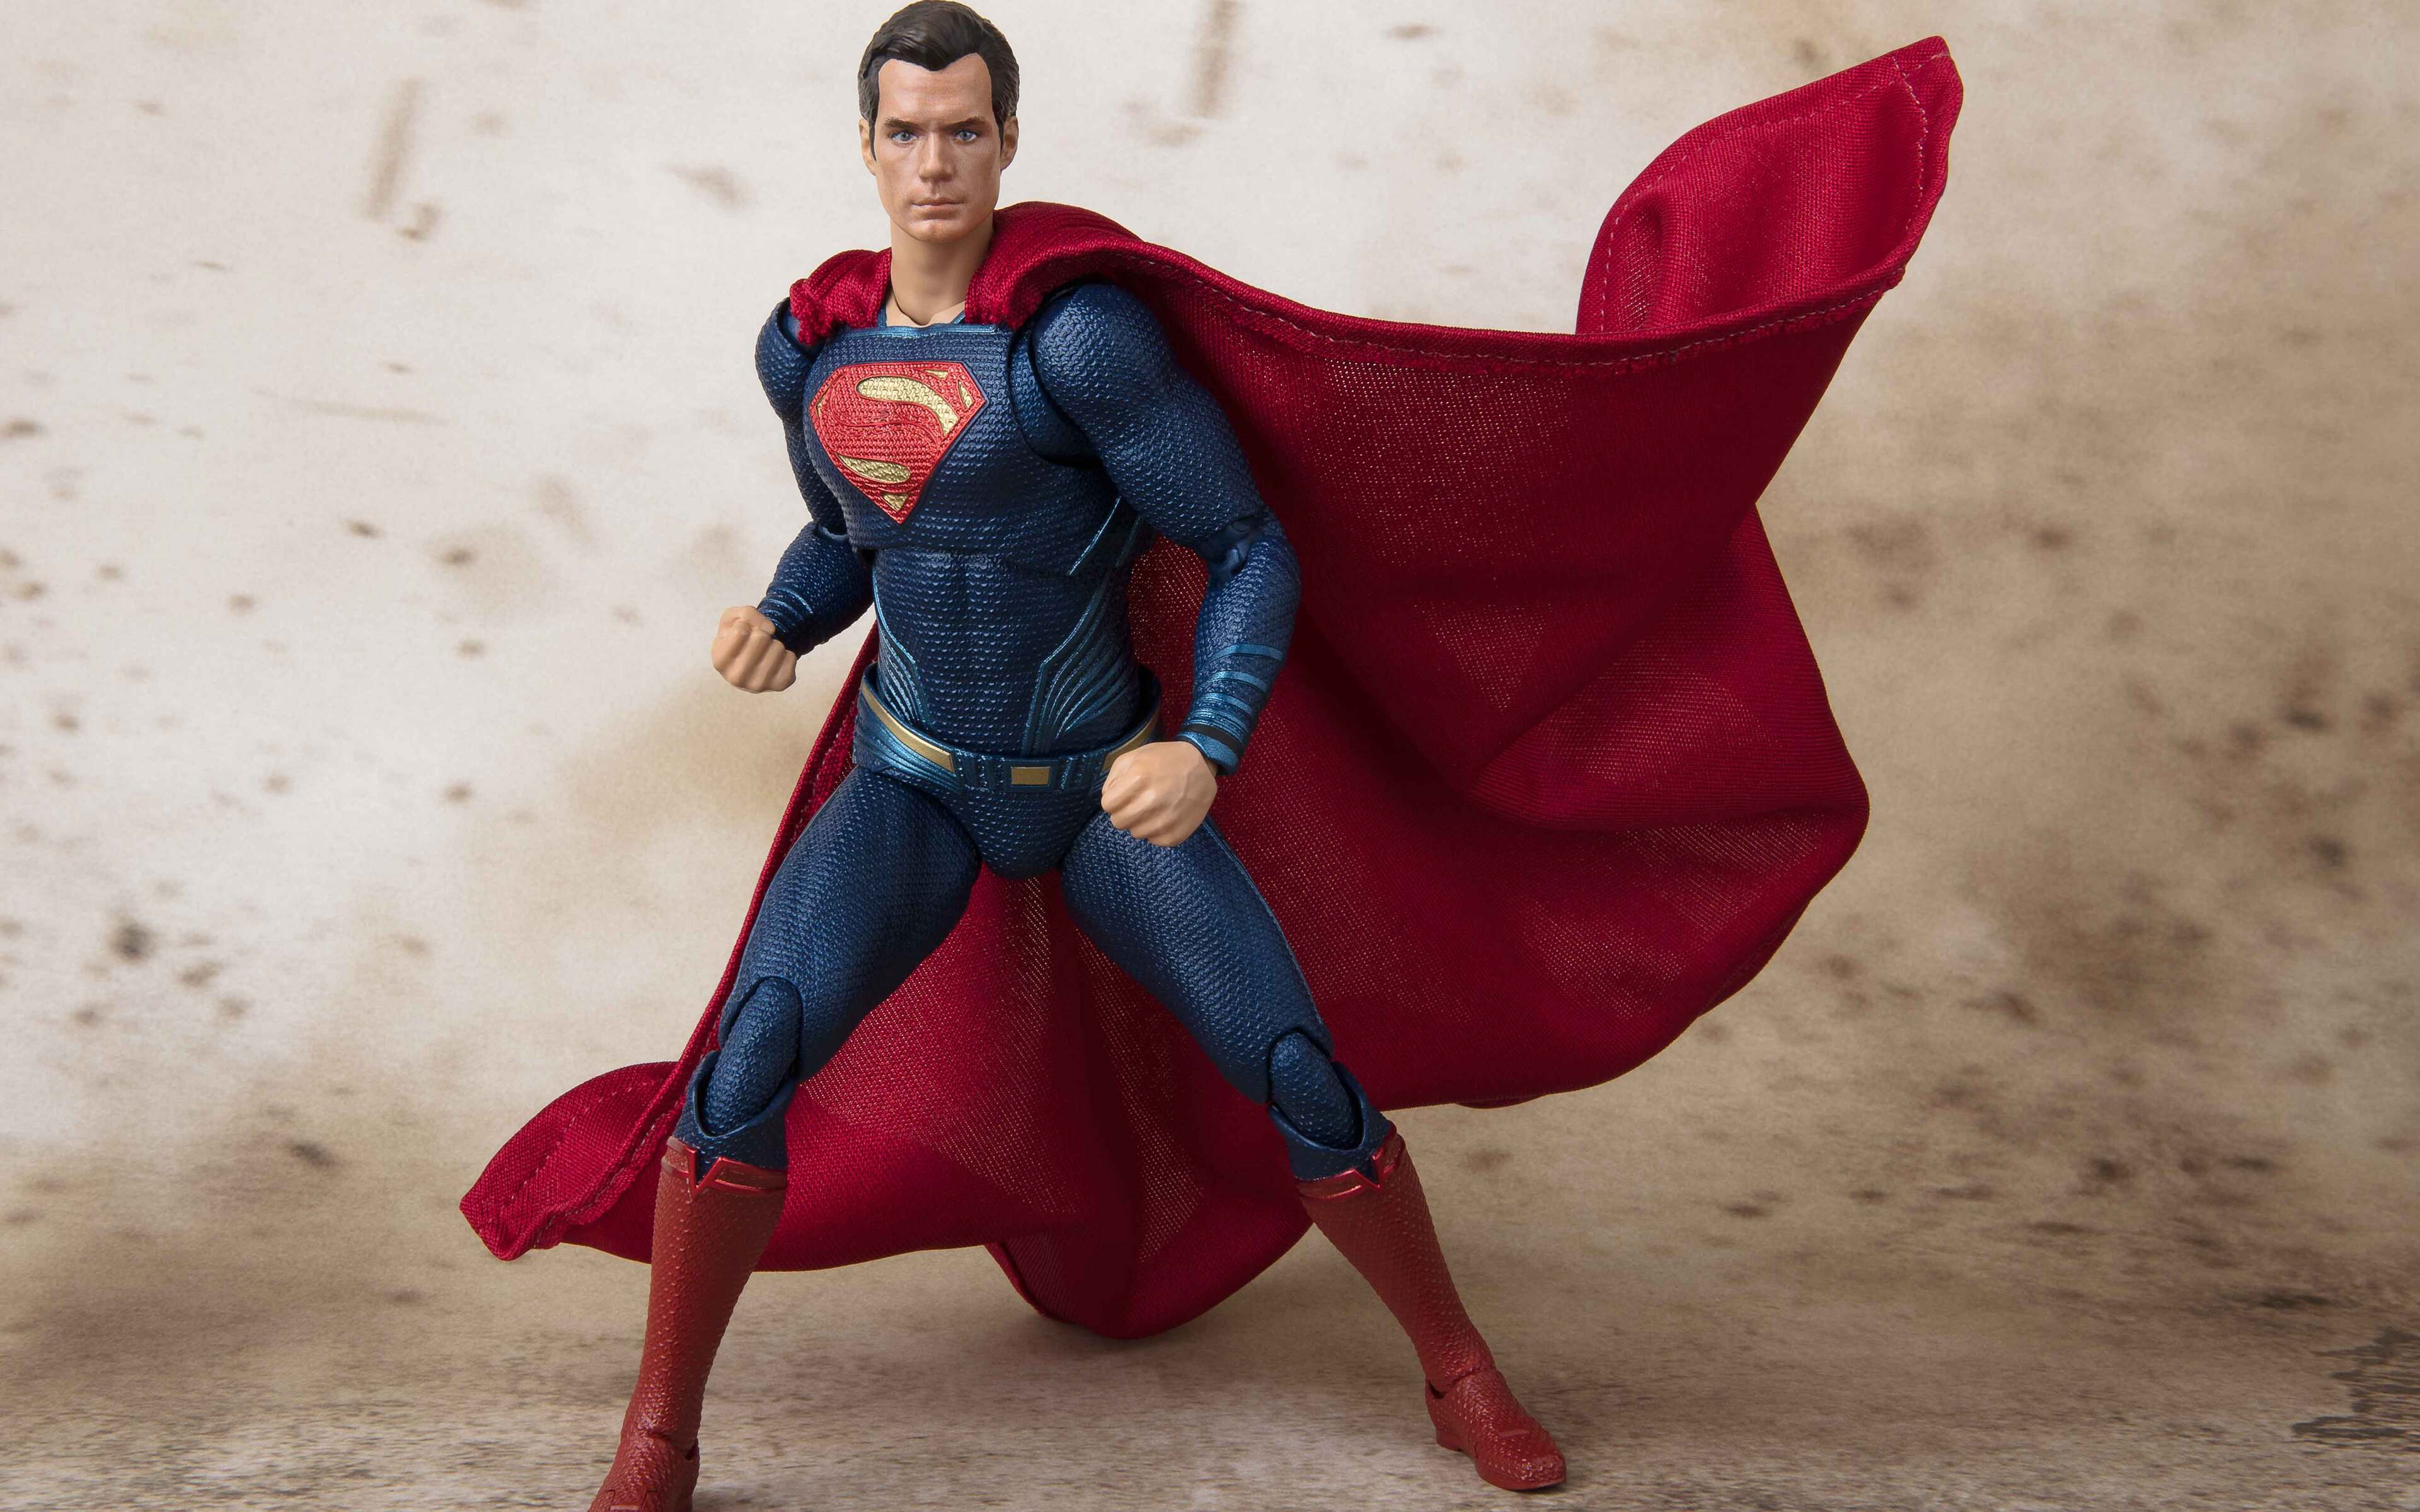 superman-justice-league-toy-vm.jpg